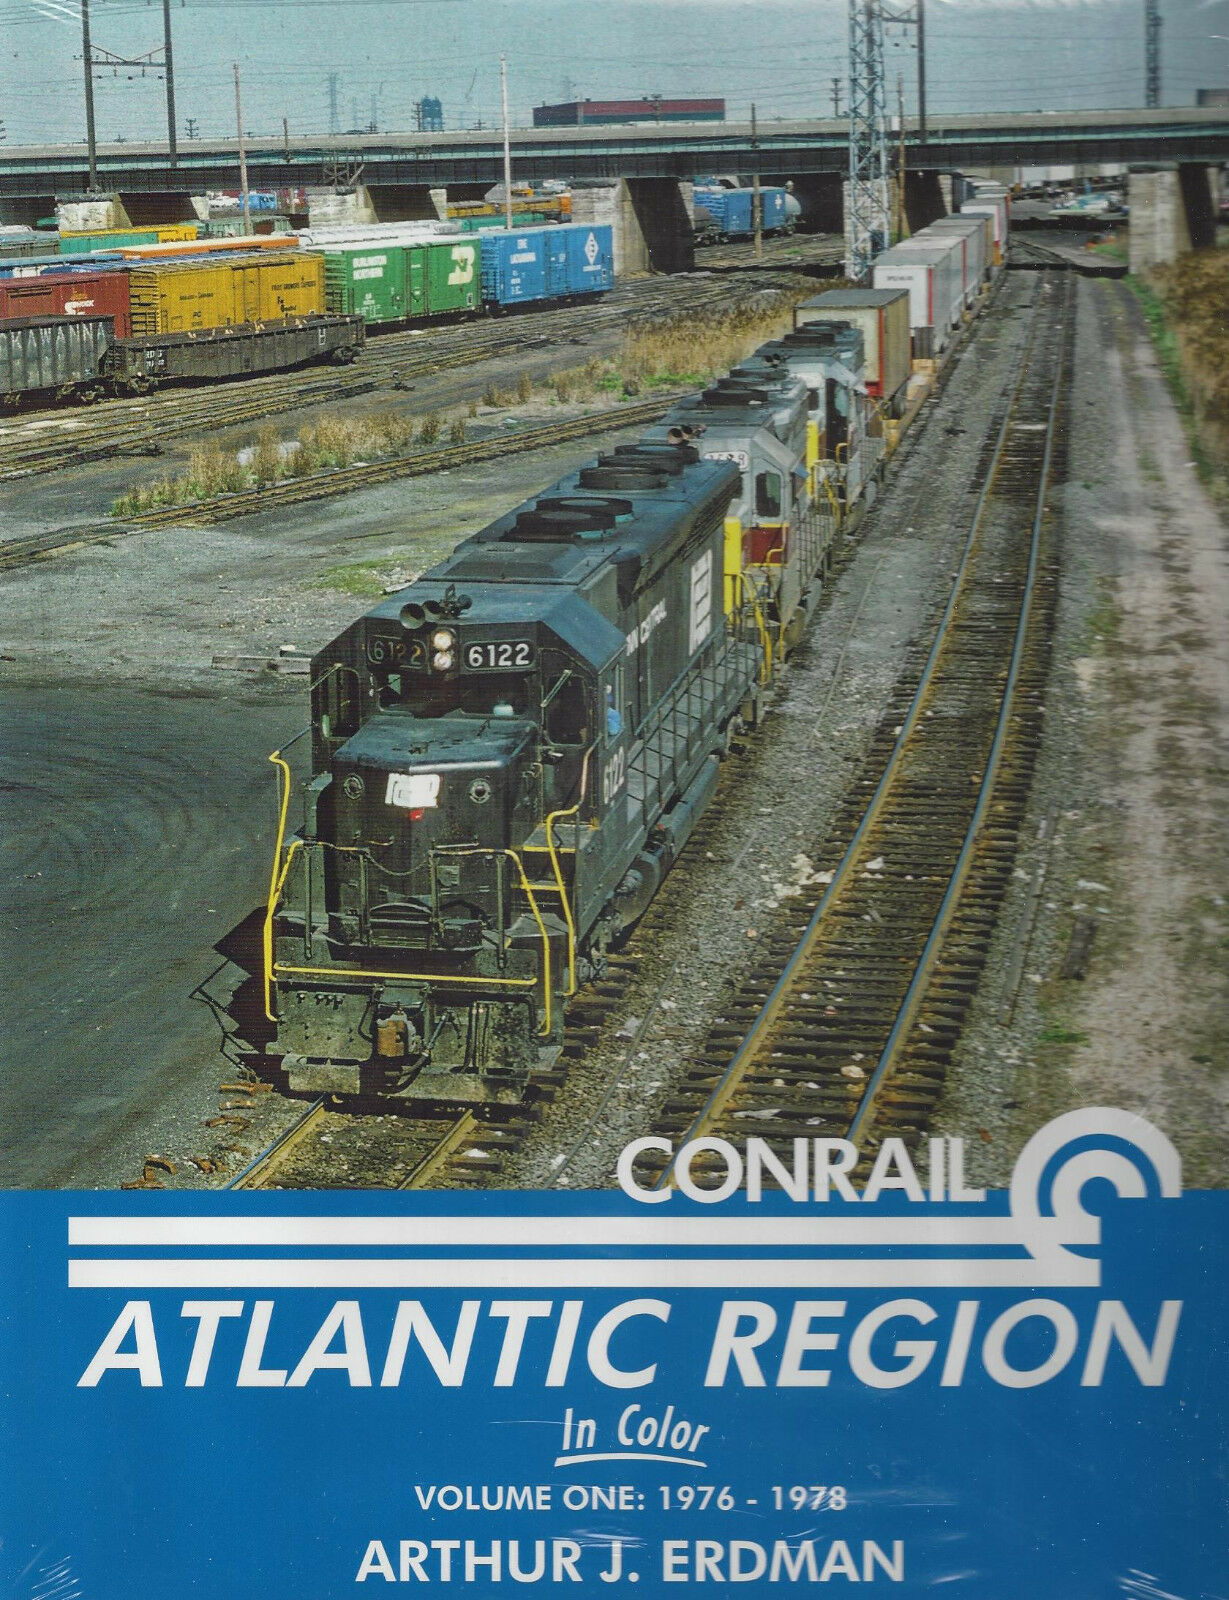 Conrail Atlantic Regione in Colore, Vol. 1, 1976-1978, The Crucible Of Nuovo